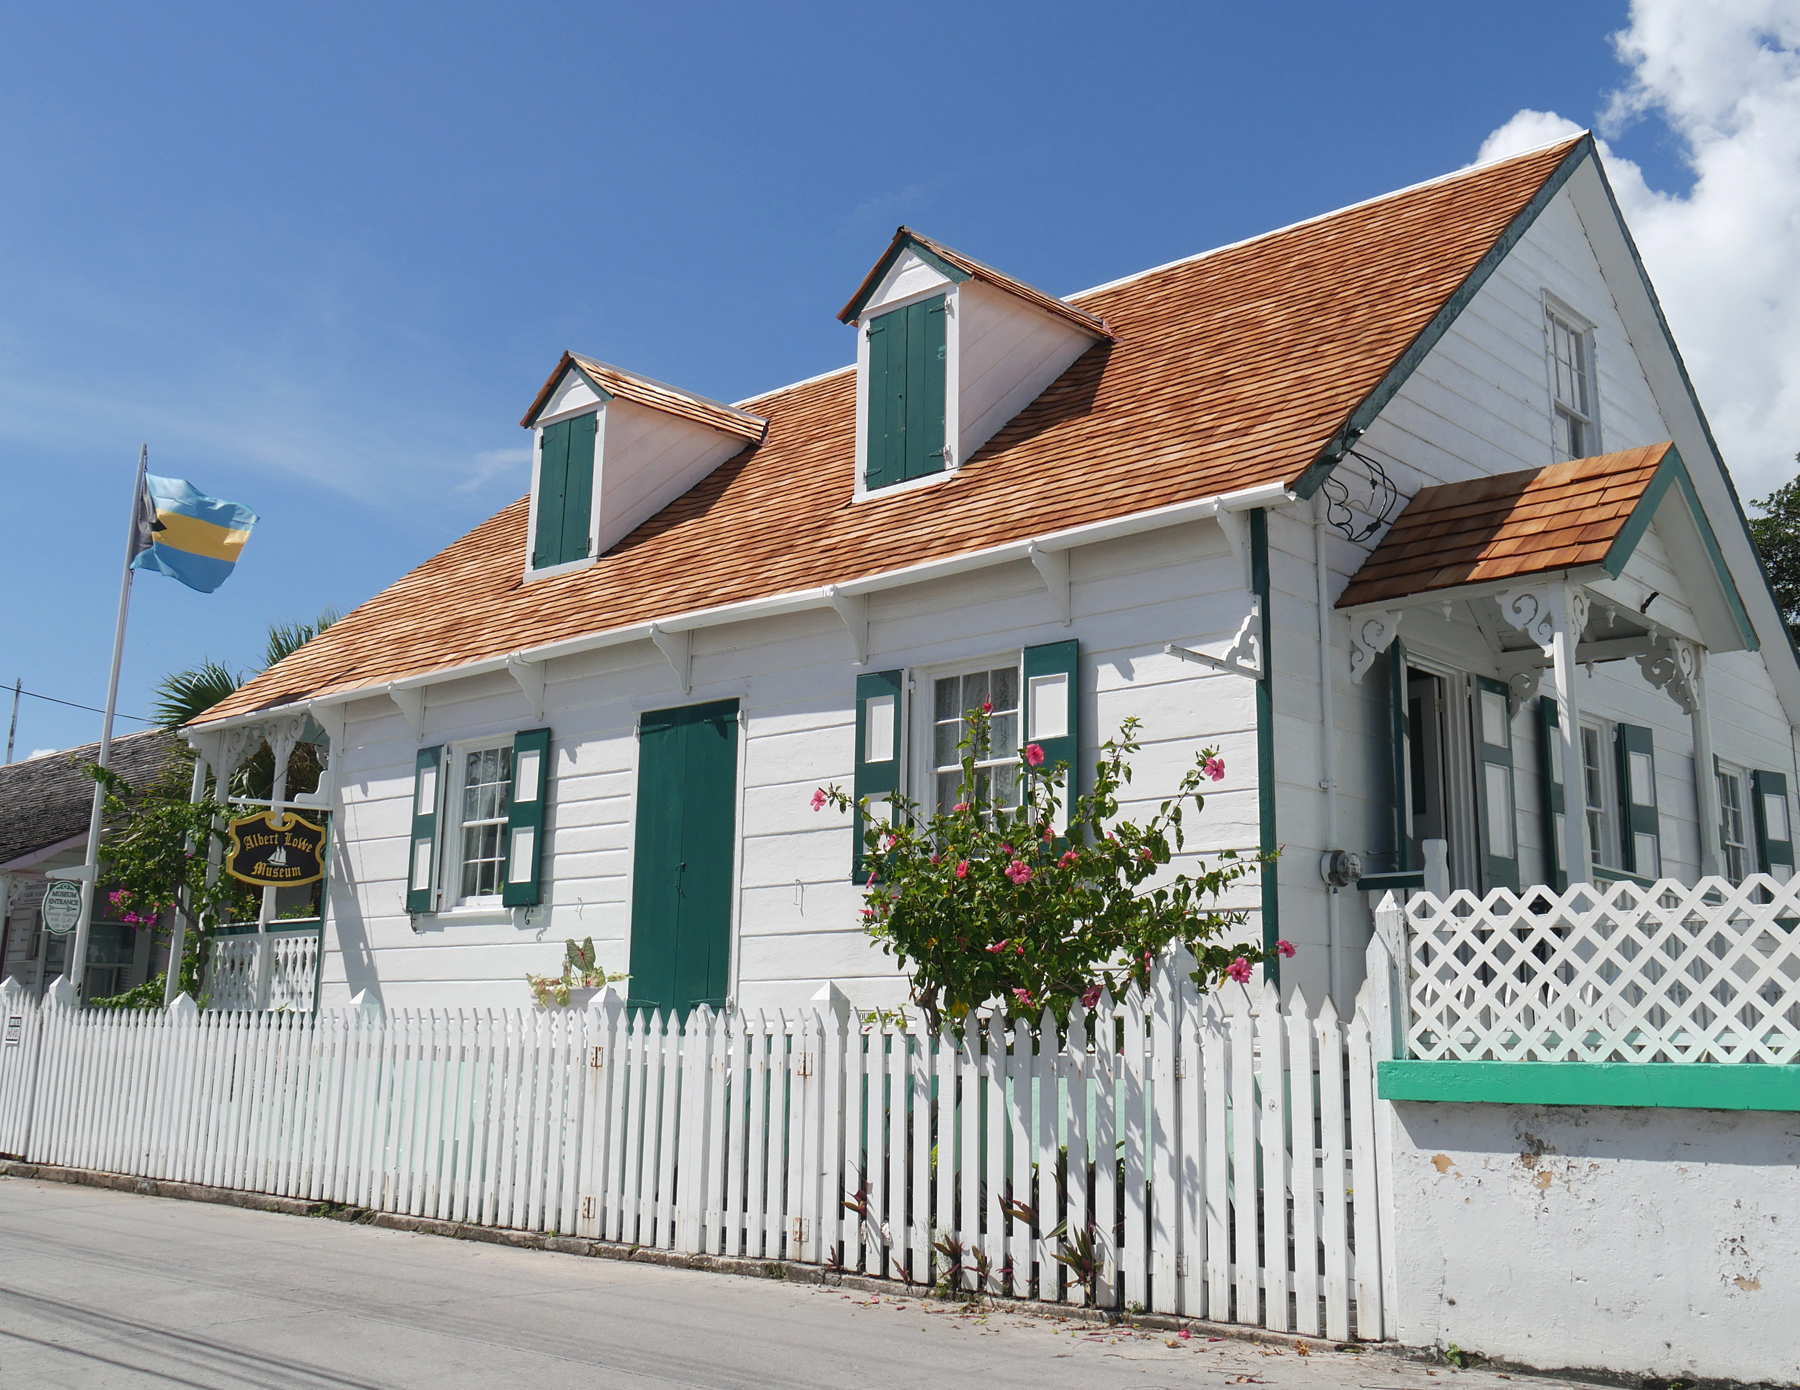 New Roof at the Albert Lowe Museum - Green Turtle Cay, Abaco, Bahamas